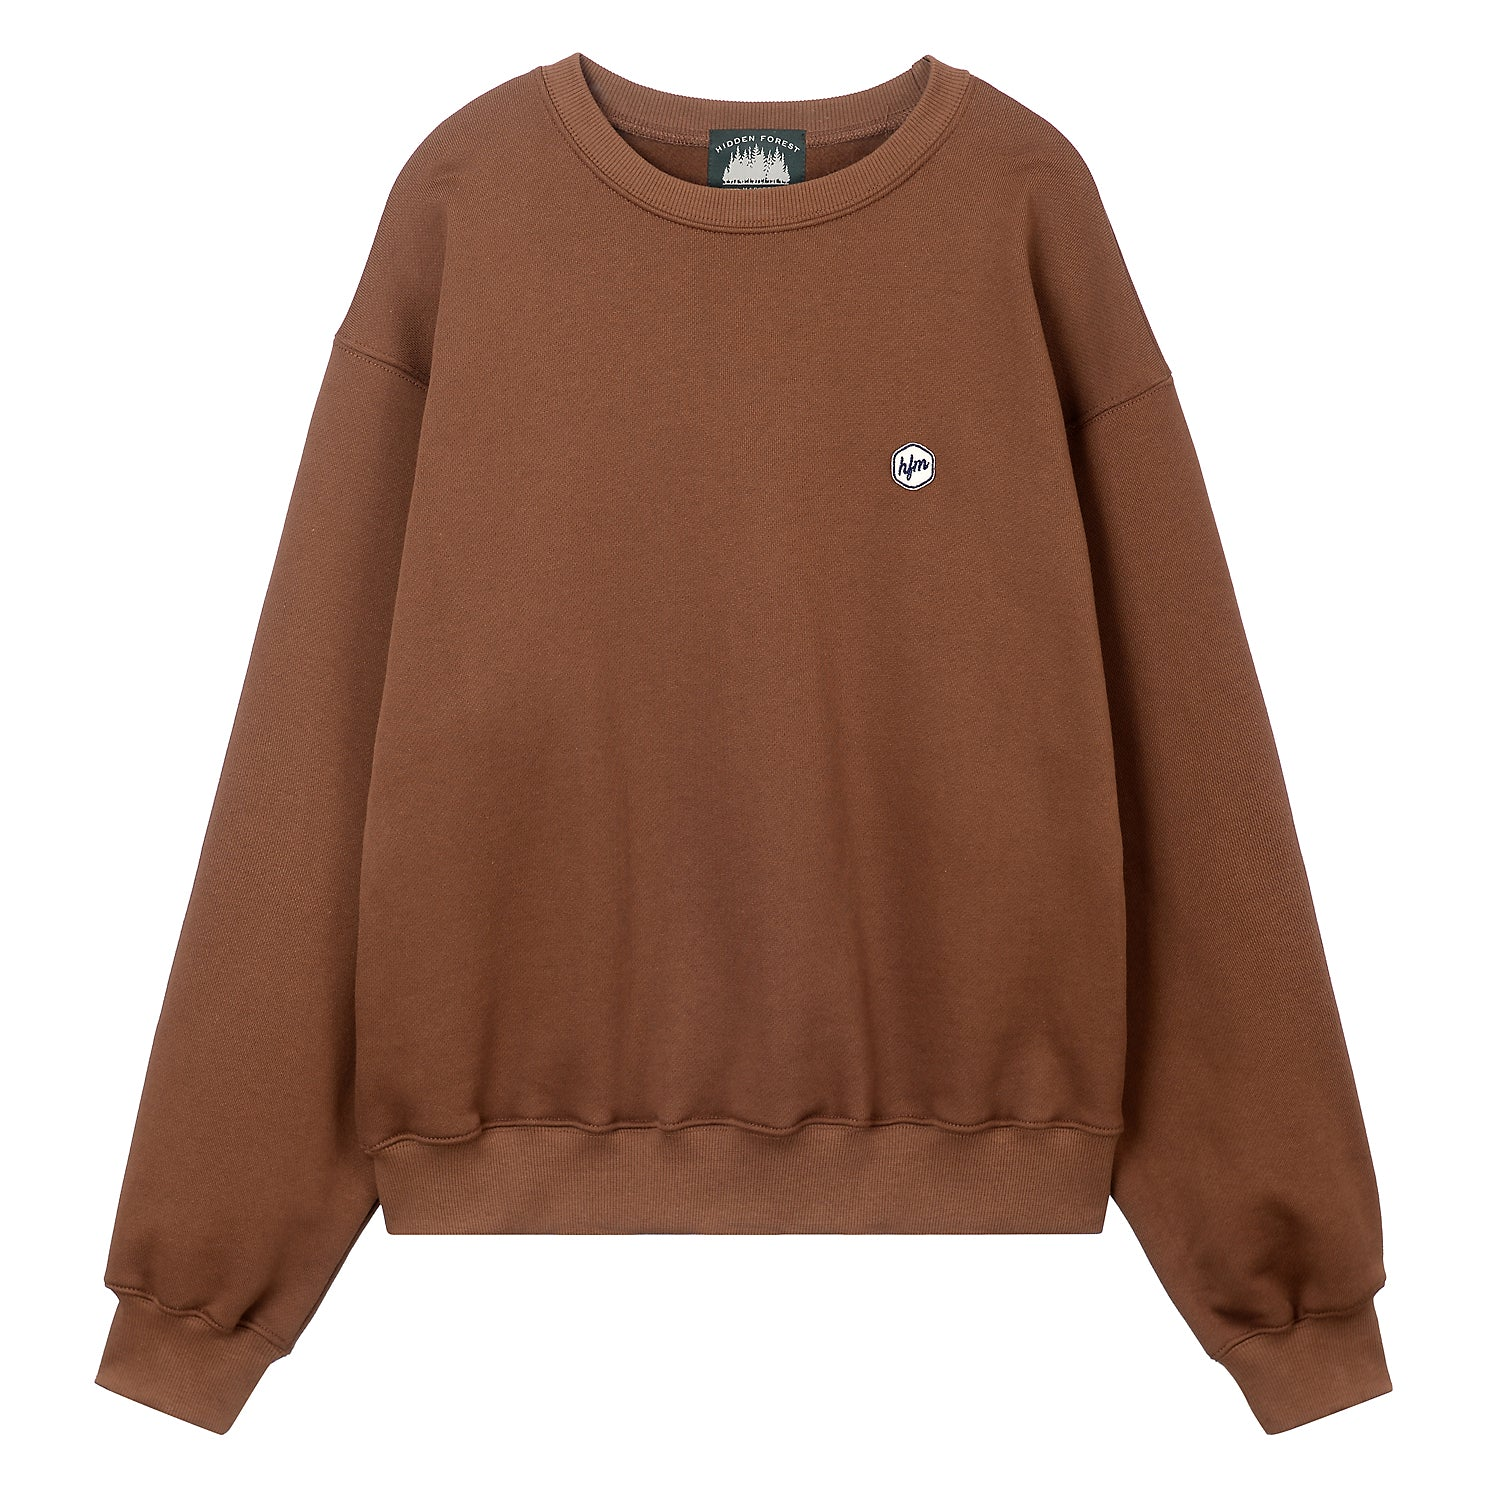 S'more sweat shirt